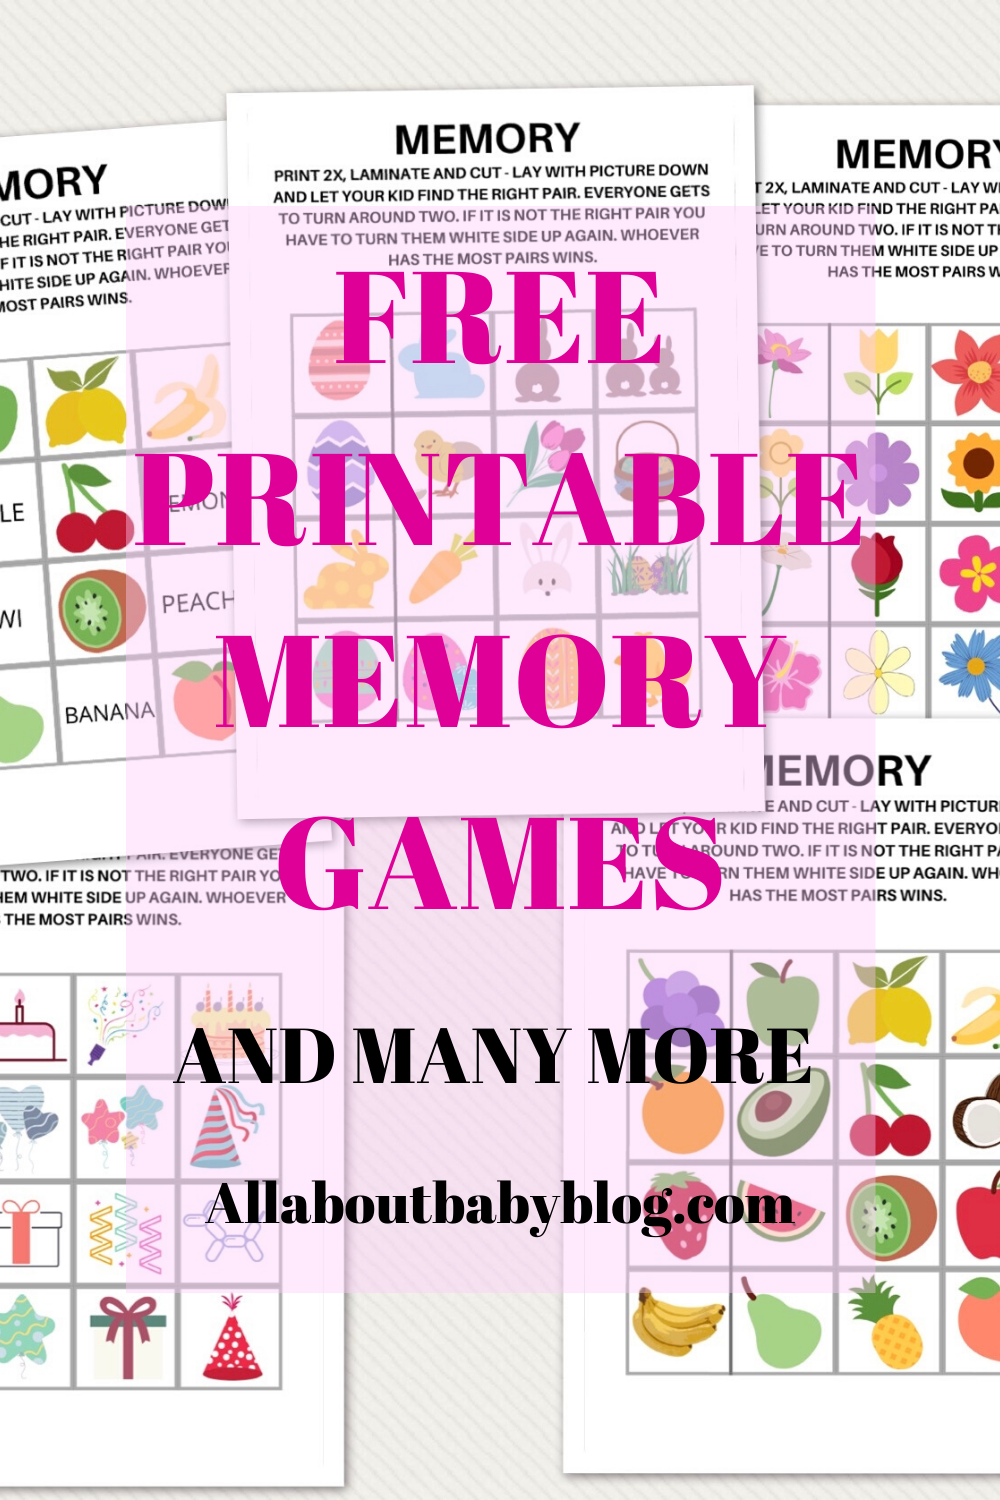 Keep the fun going with 5 free printable memory games for